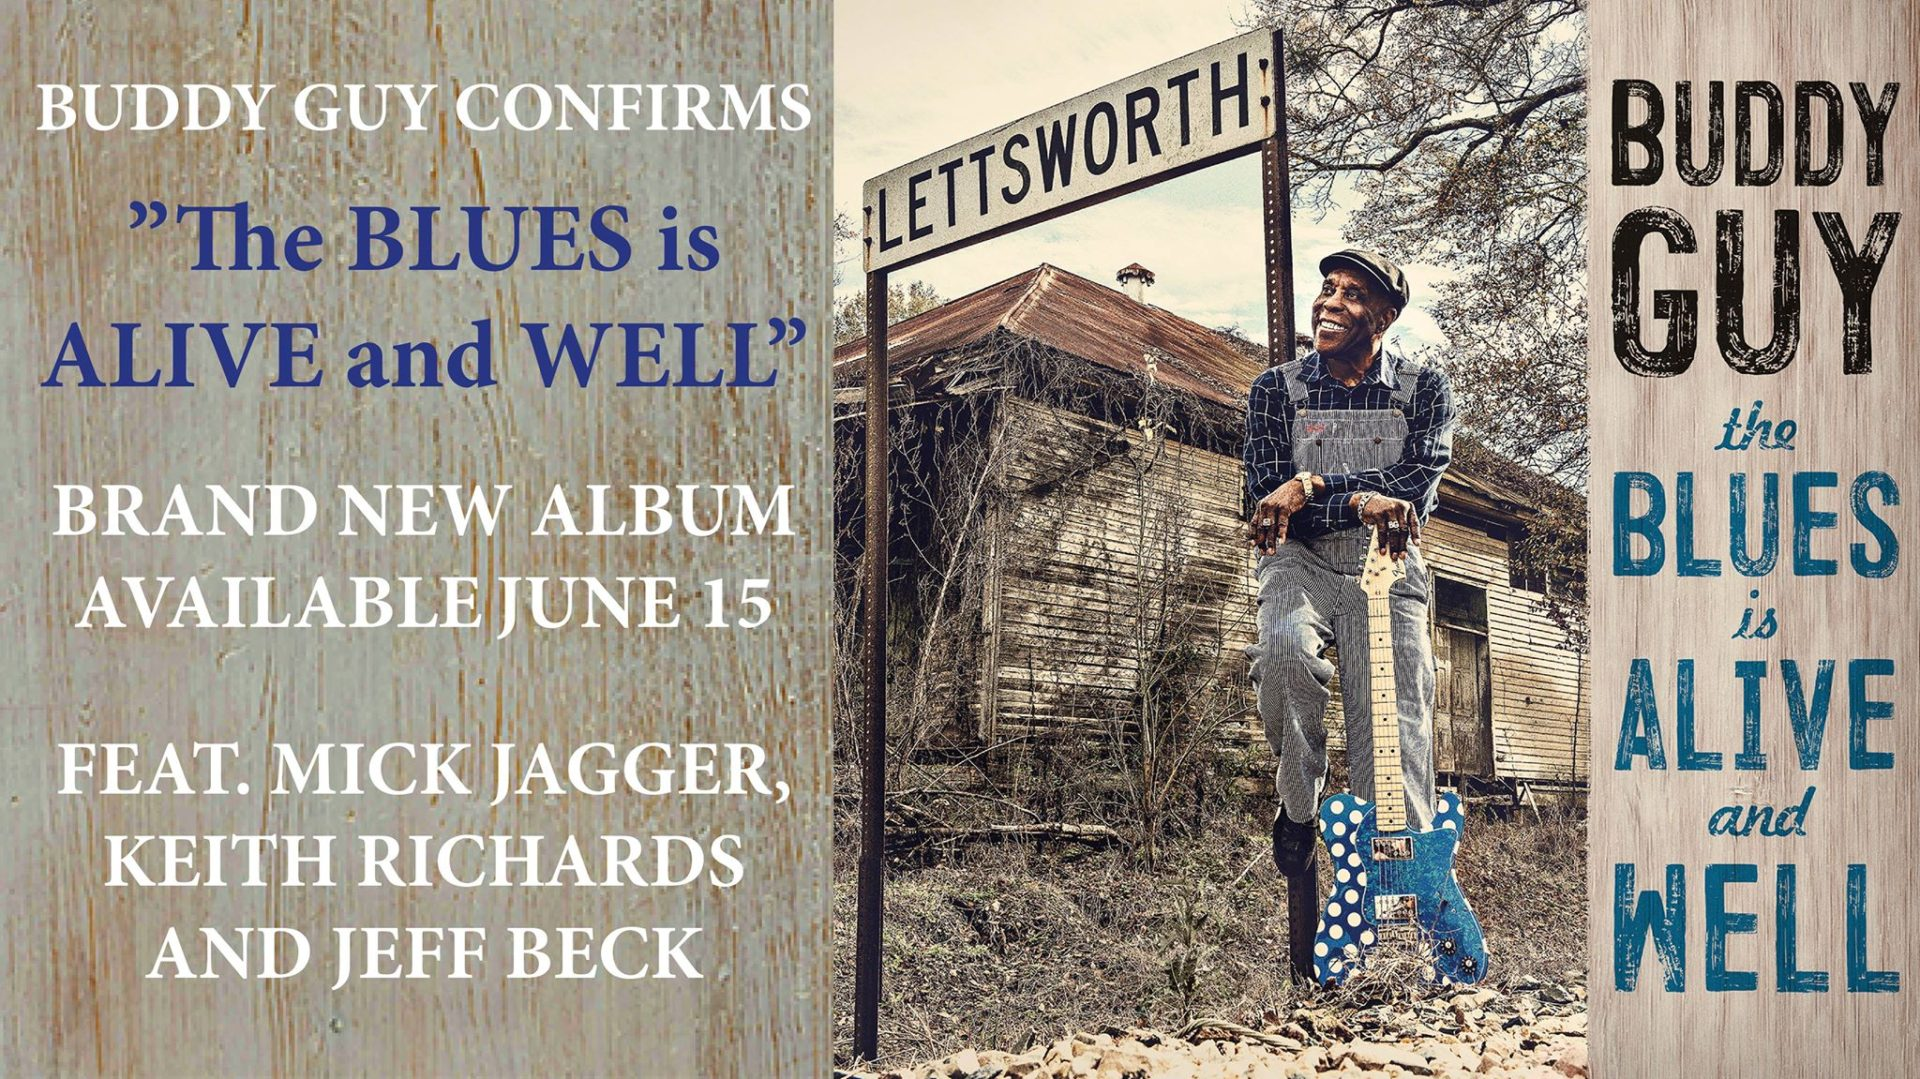 Buddy Guy image for the Blues Is Alive And Well album release on 15th June 2018